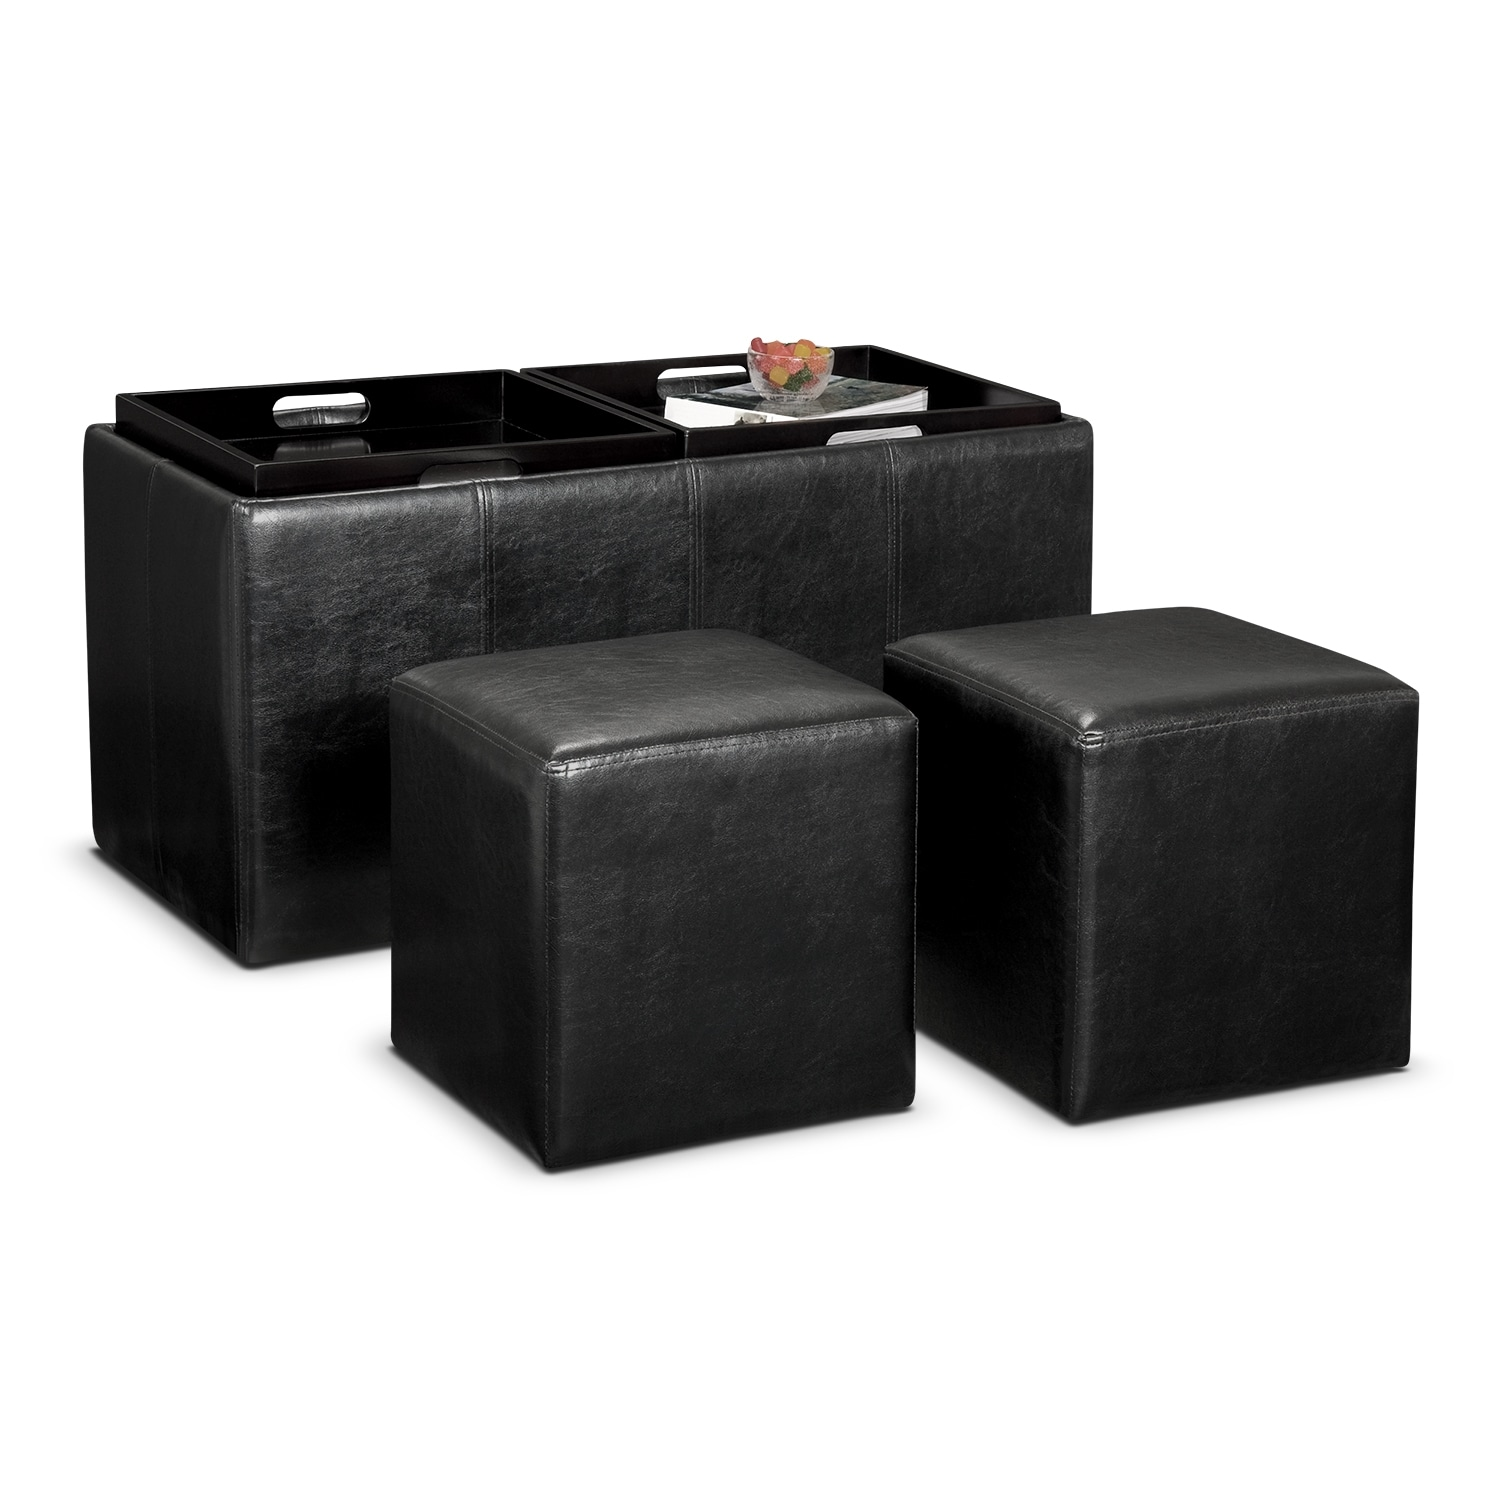 Living Room Ottoman With Storage Storage Ottomans Living Room American Signature Furniture